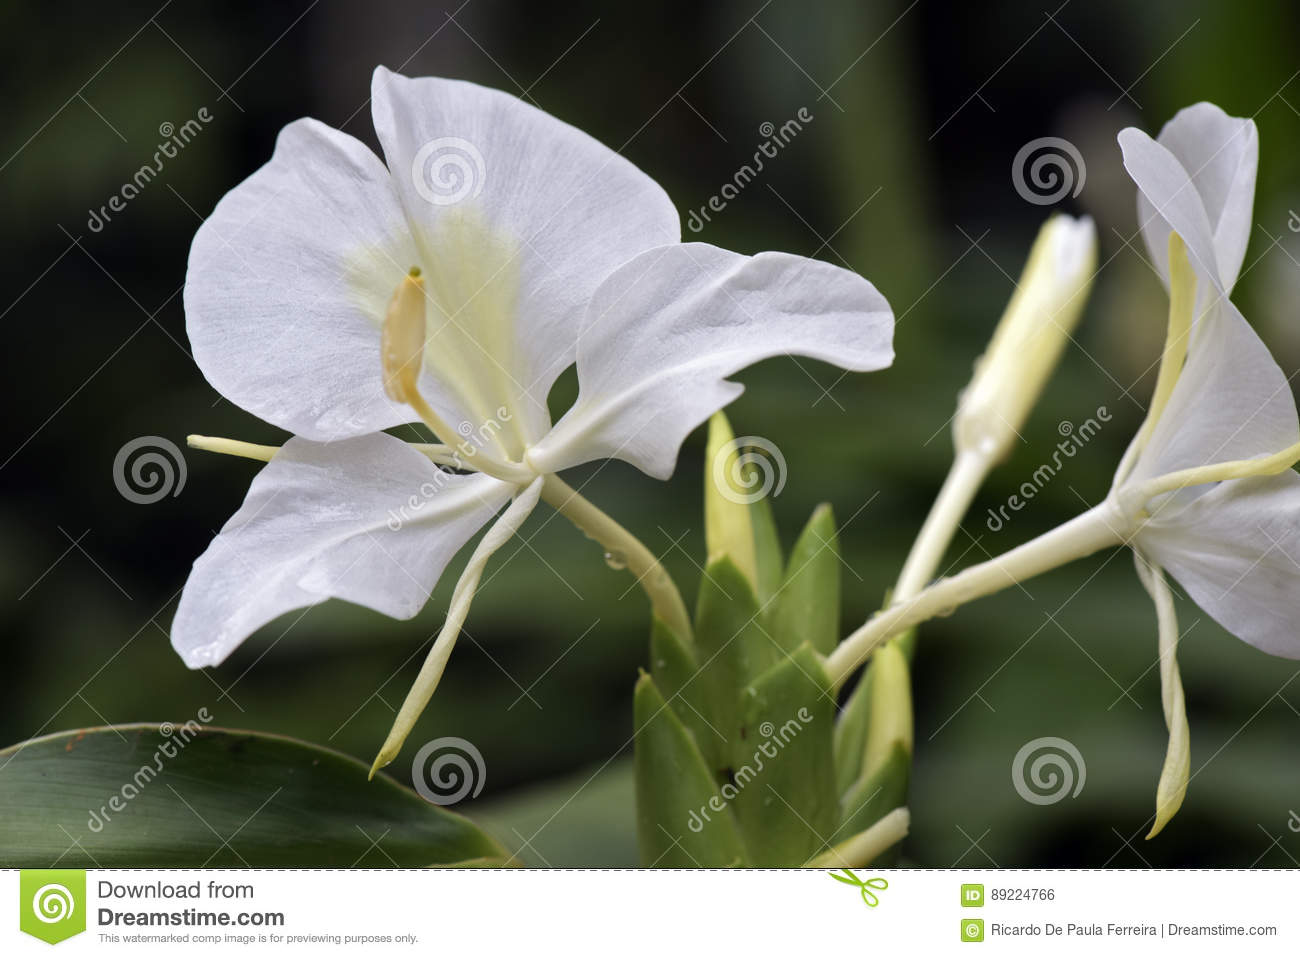 White Ginger Lily In Bloom On Dark Garden Background Stock Photo